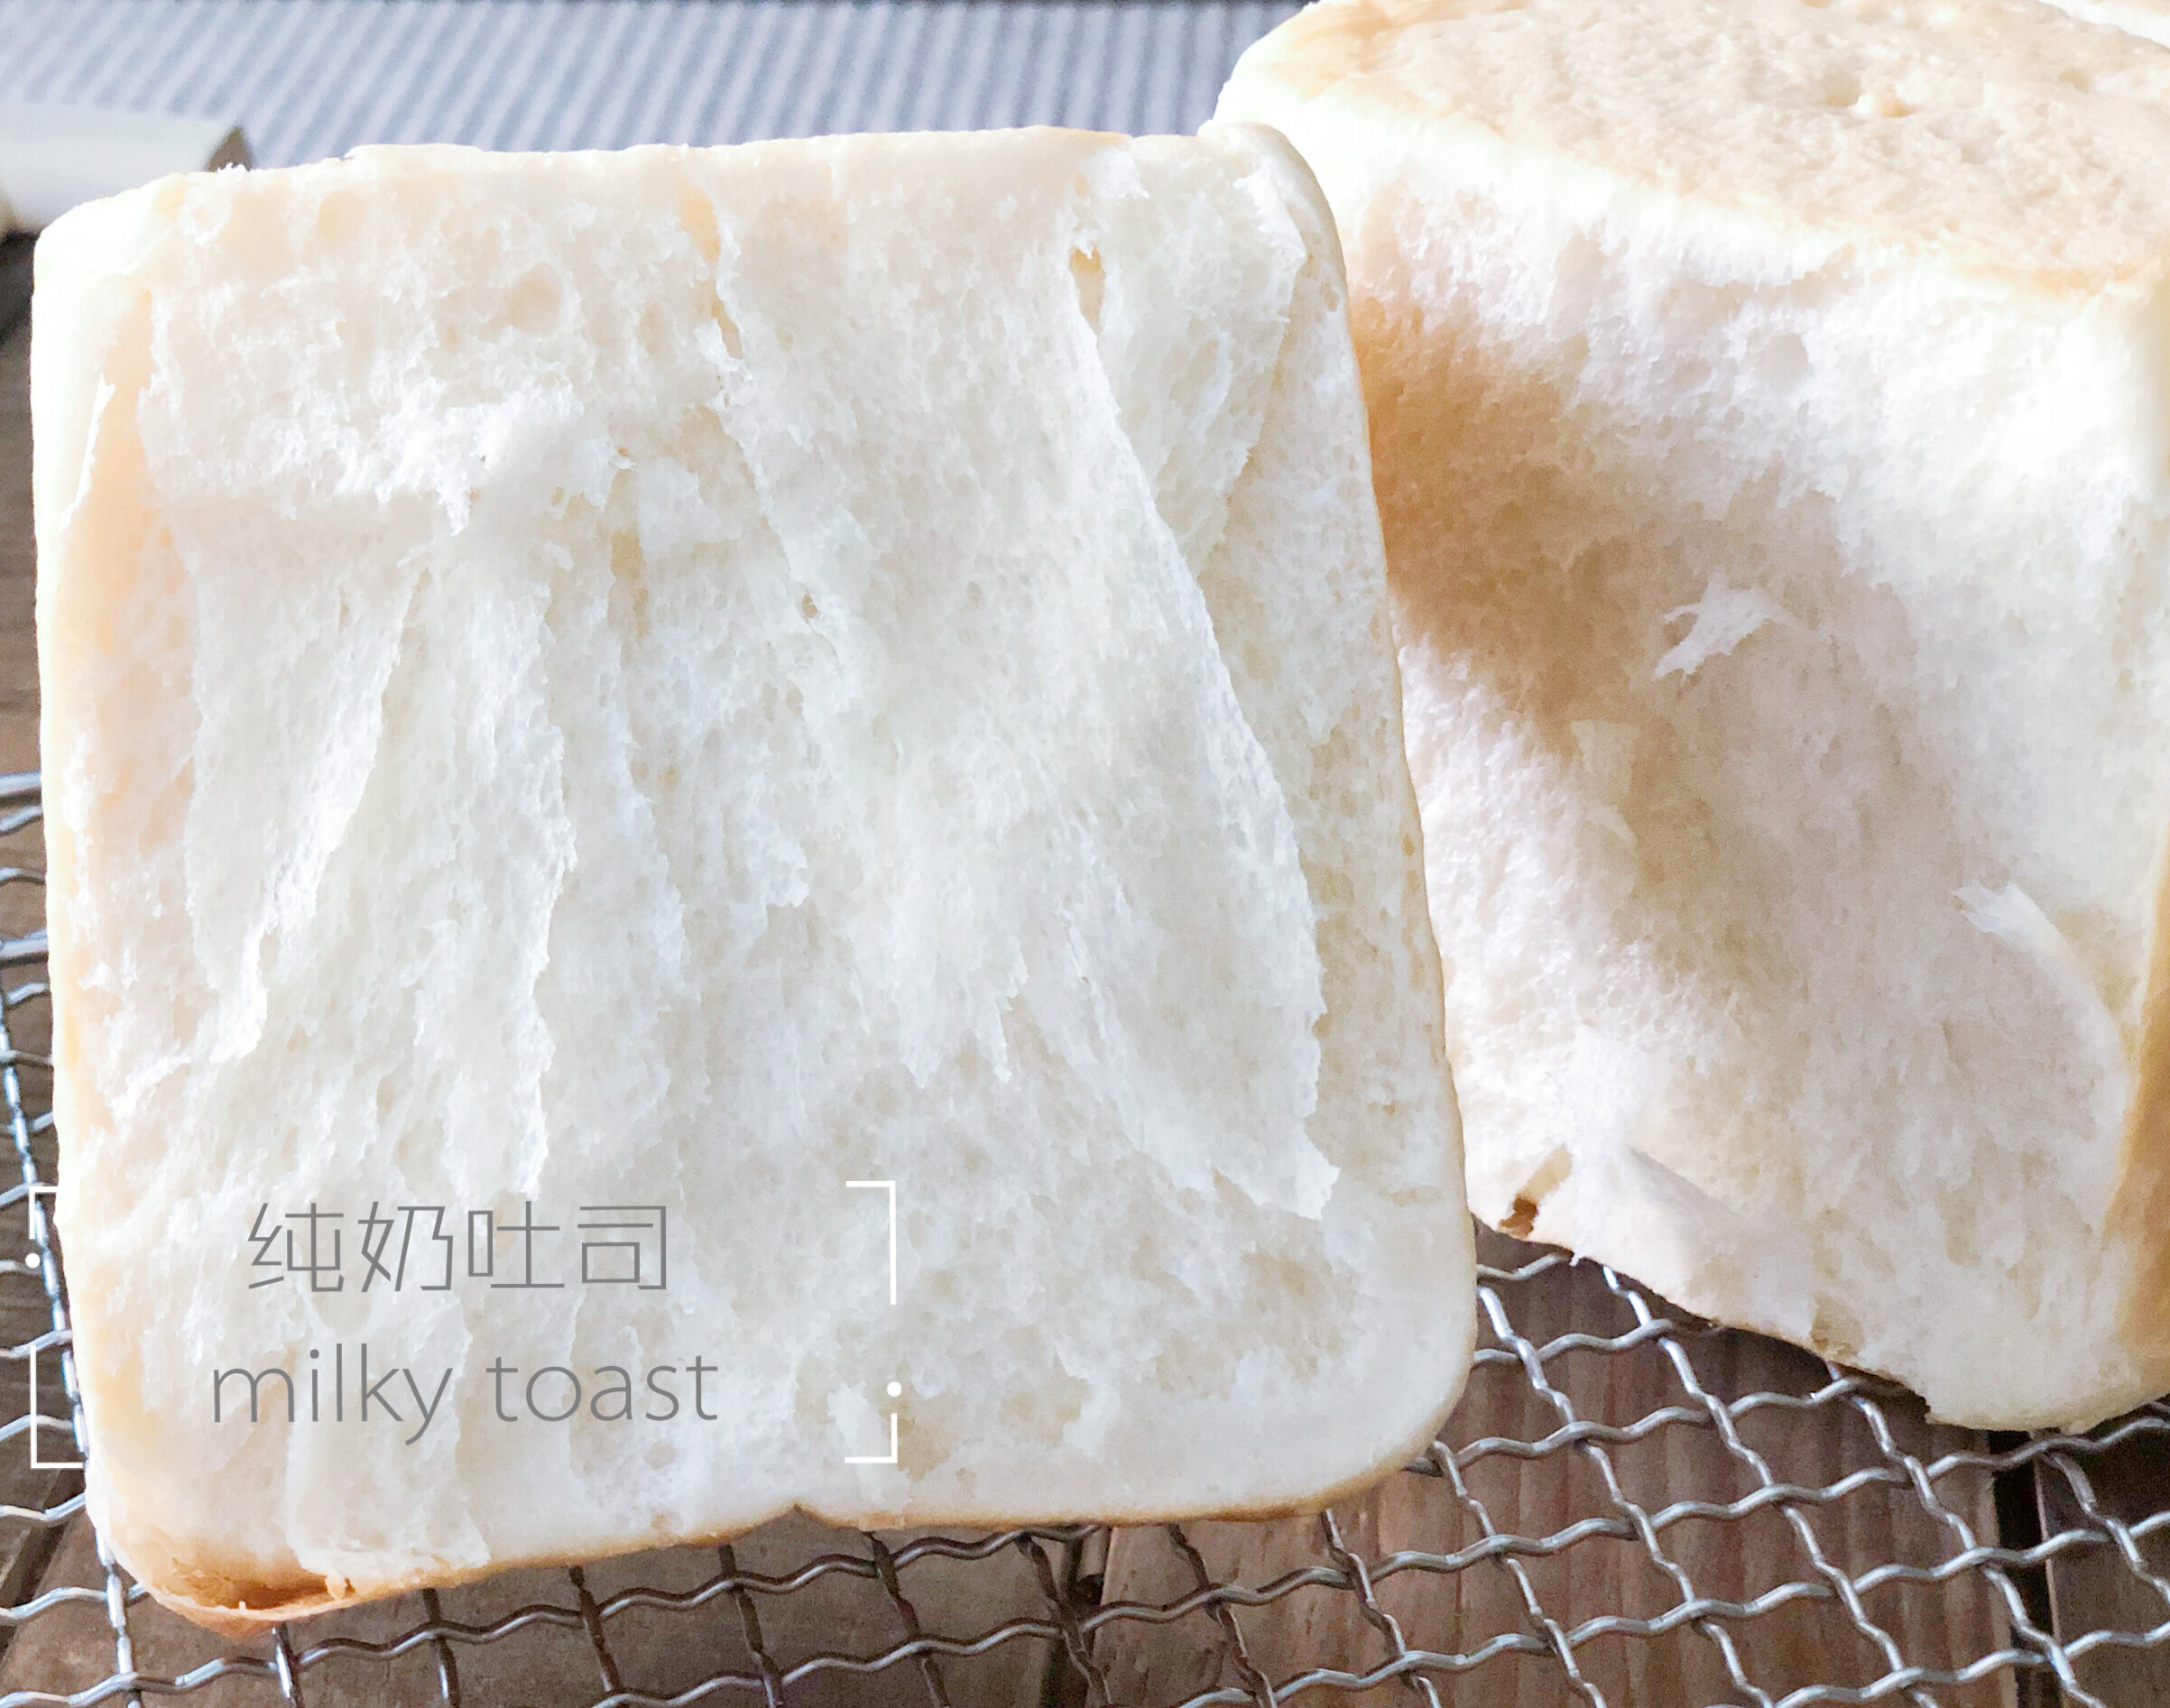 milky toast (one proofing) ~ highly recommended 纯奶吐司(一次发酵)~强推